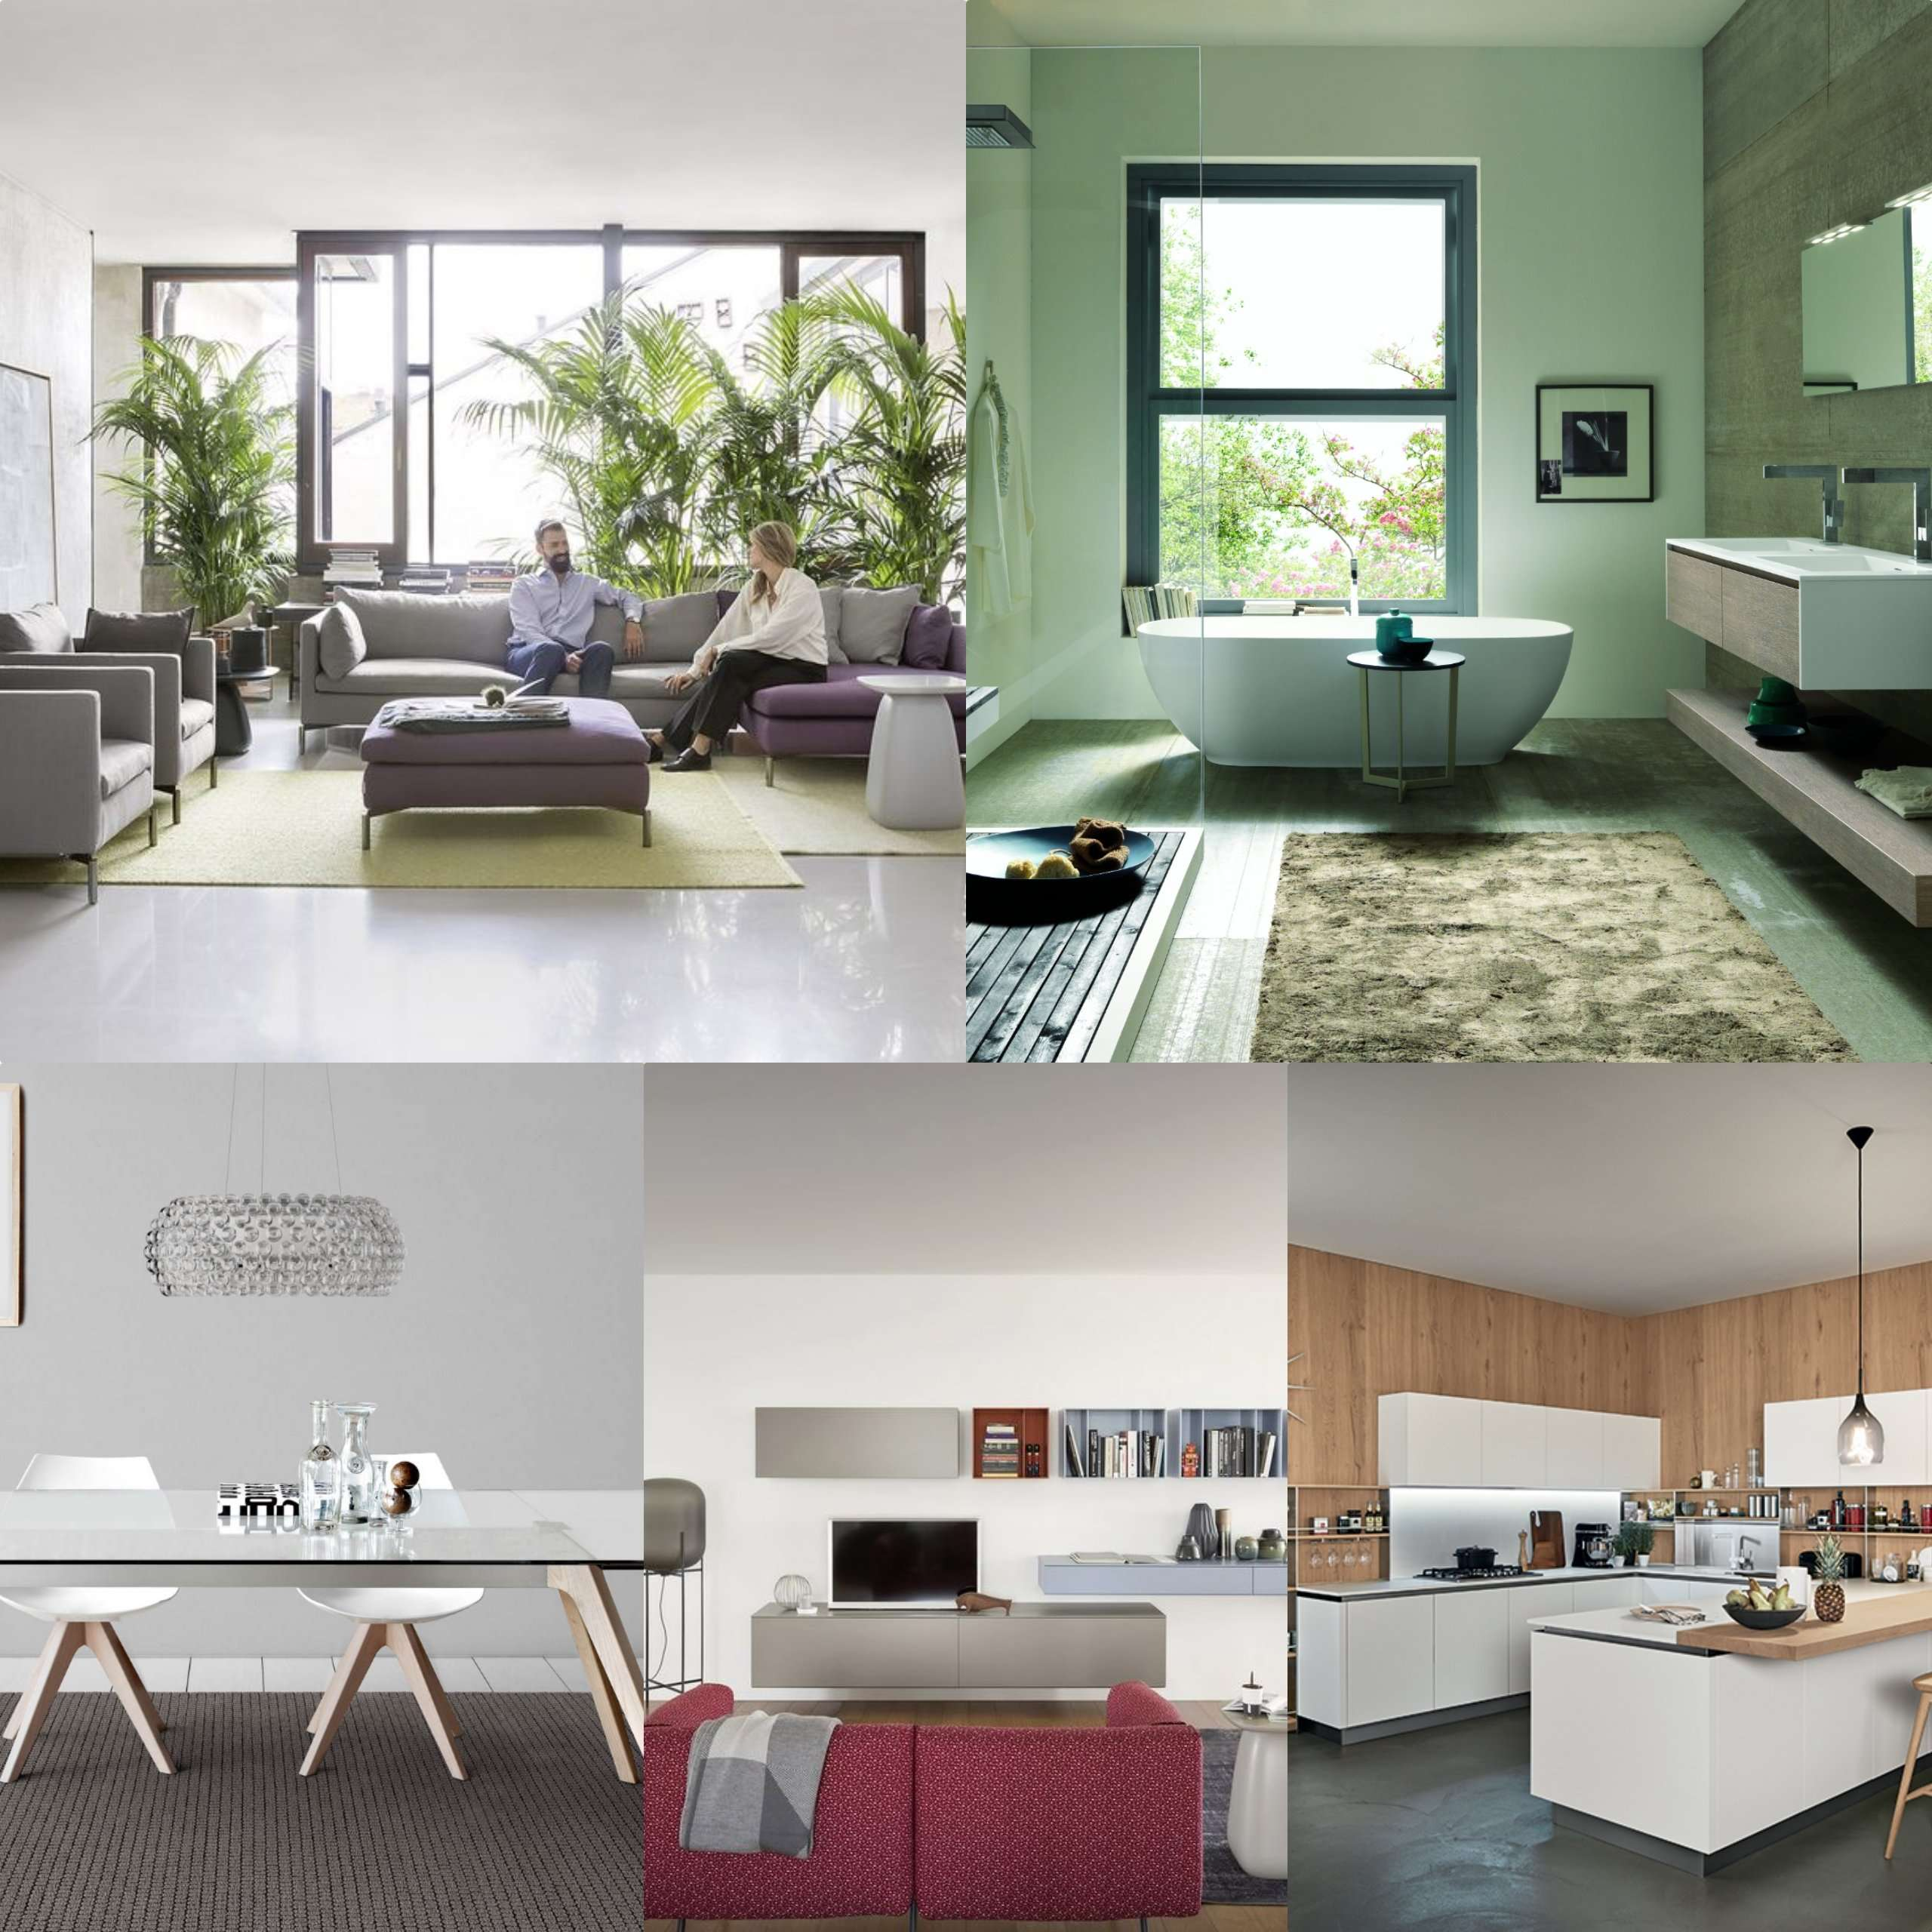 Arredamento Buongiorno Lodi furnish your home with taste, choosing not only the quality